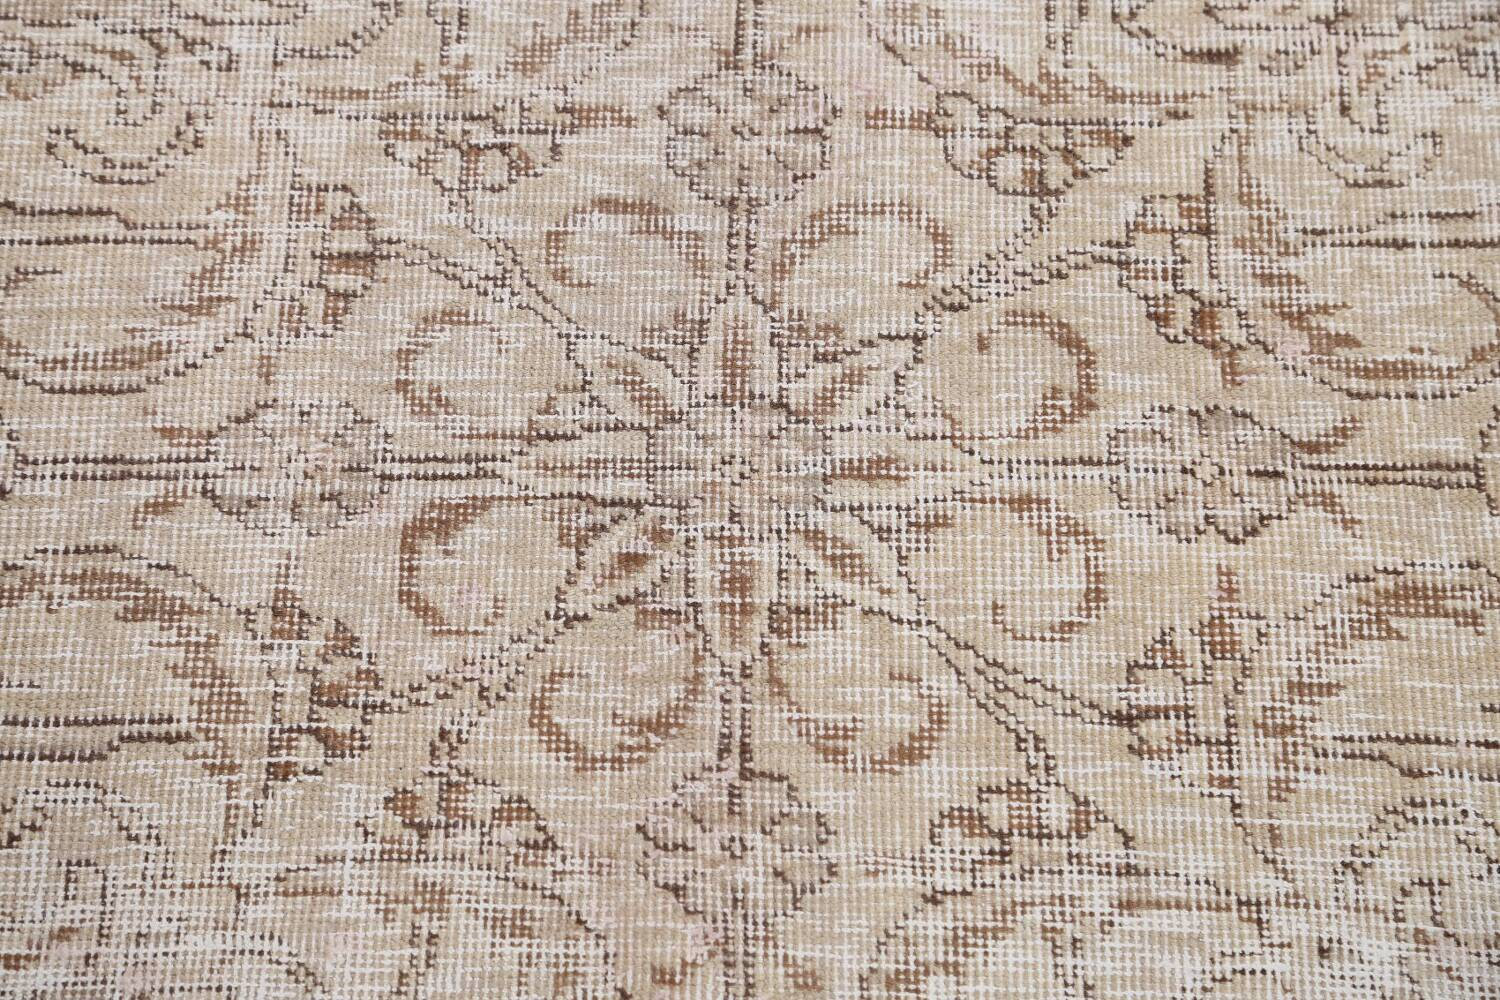 Antique Muted Floral Tabriz Persian Area Rug 9x12 image 11